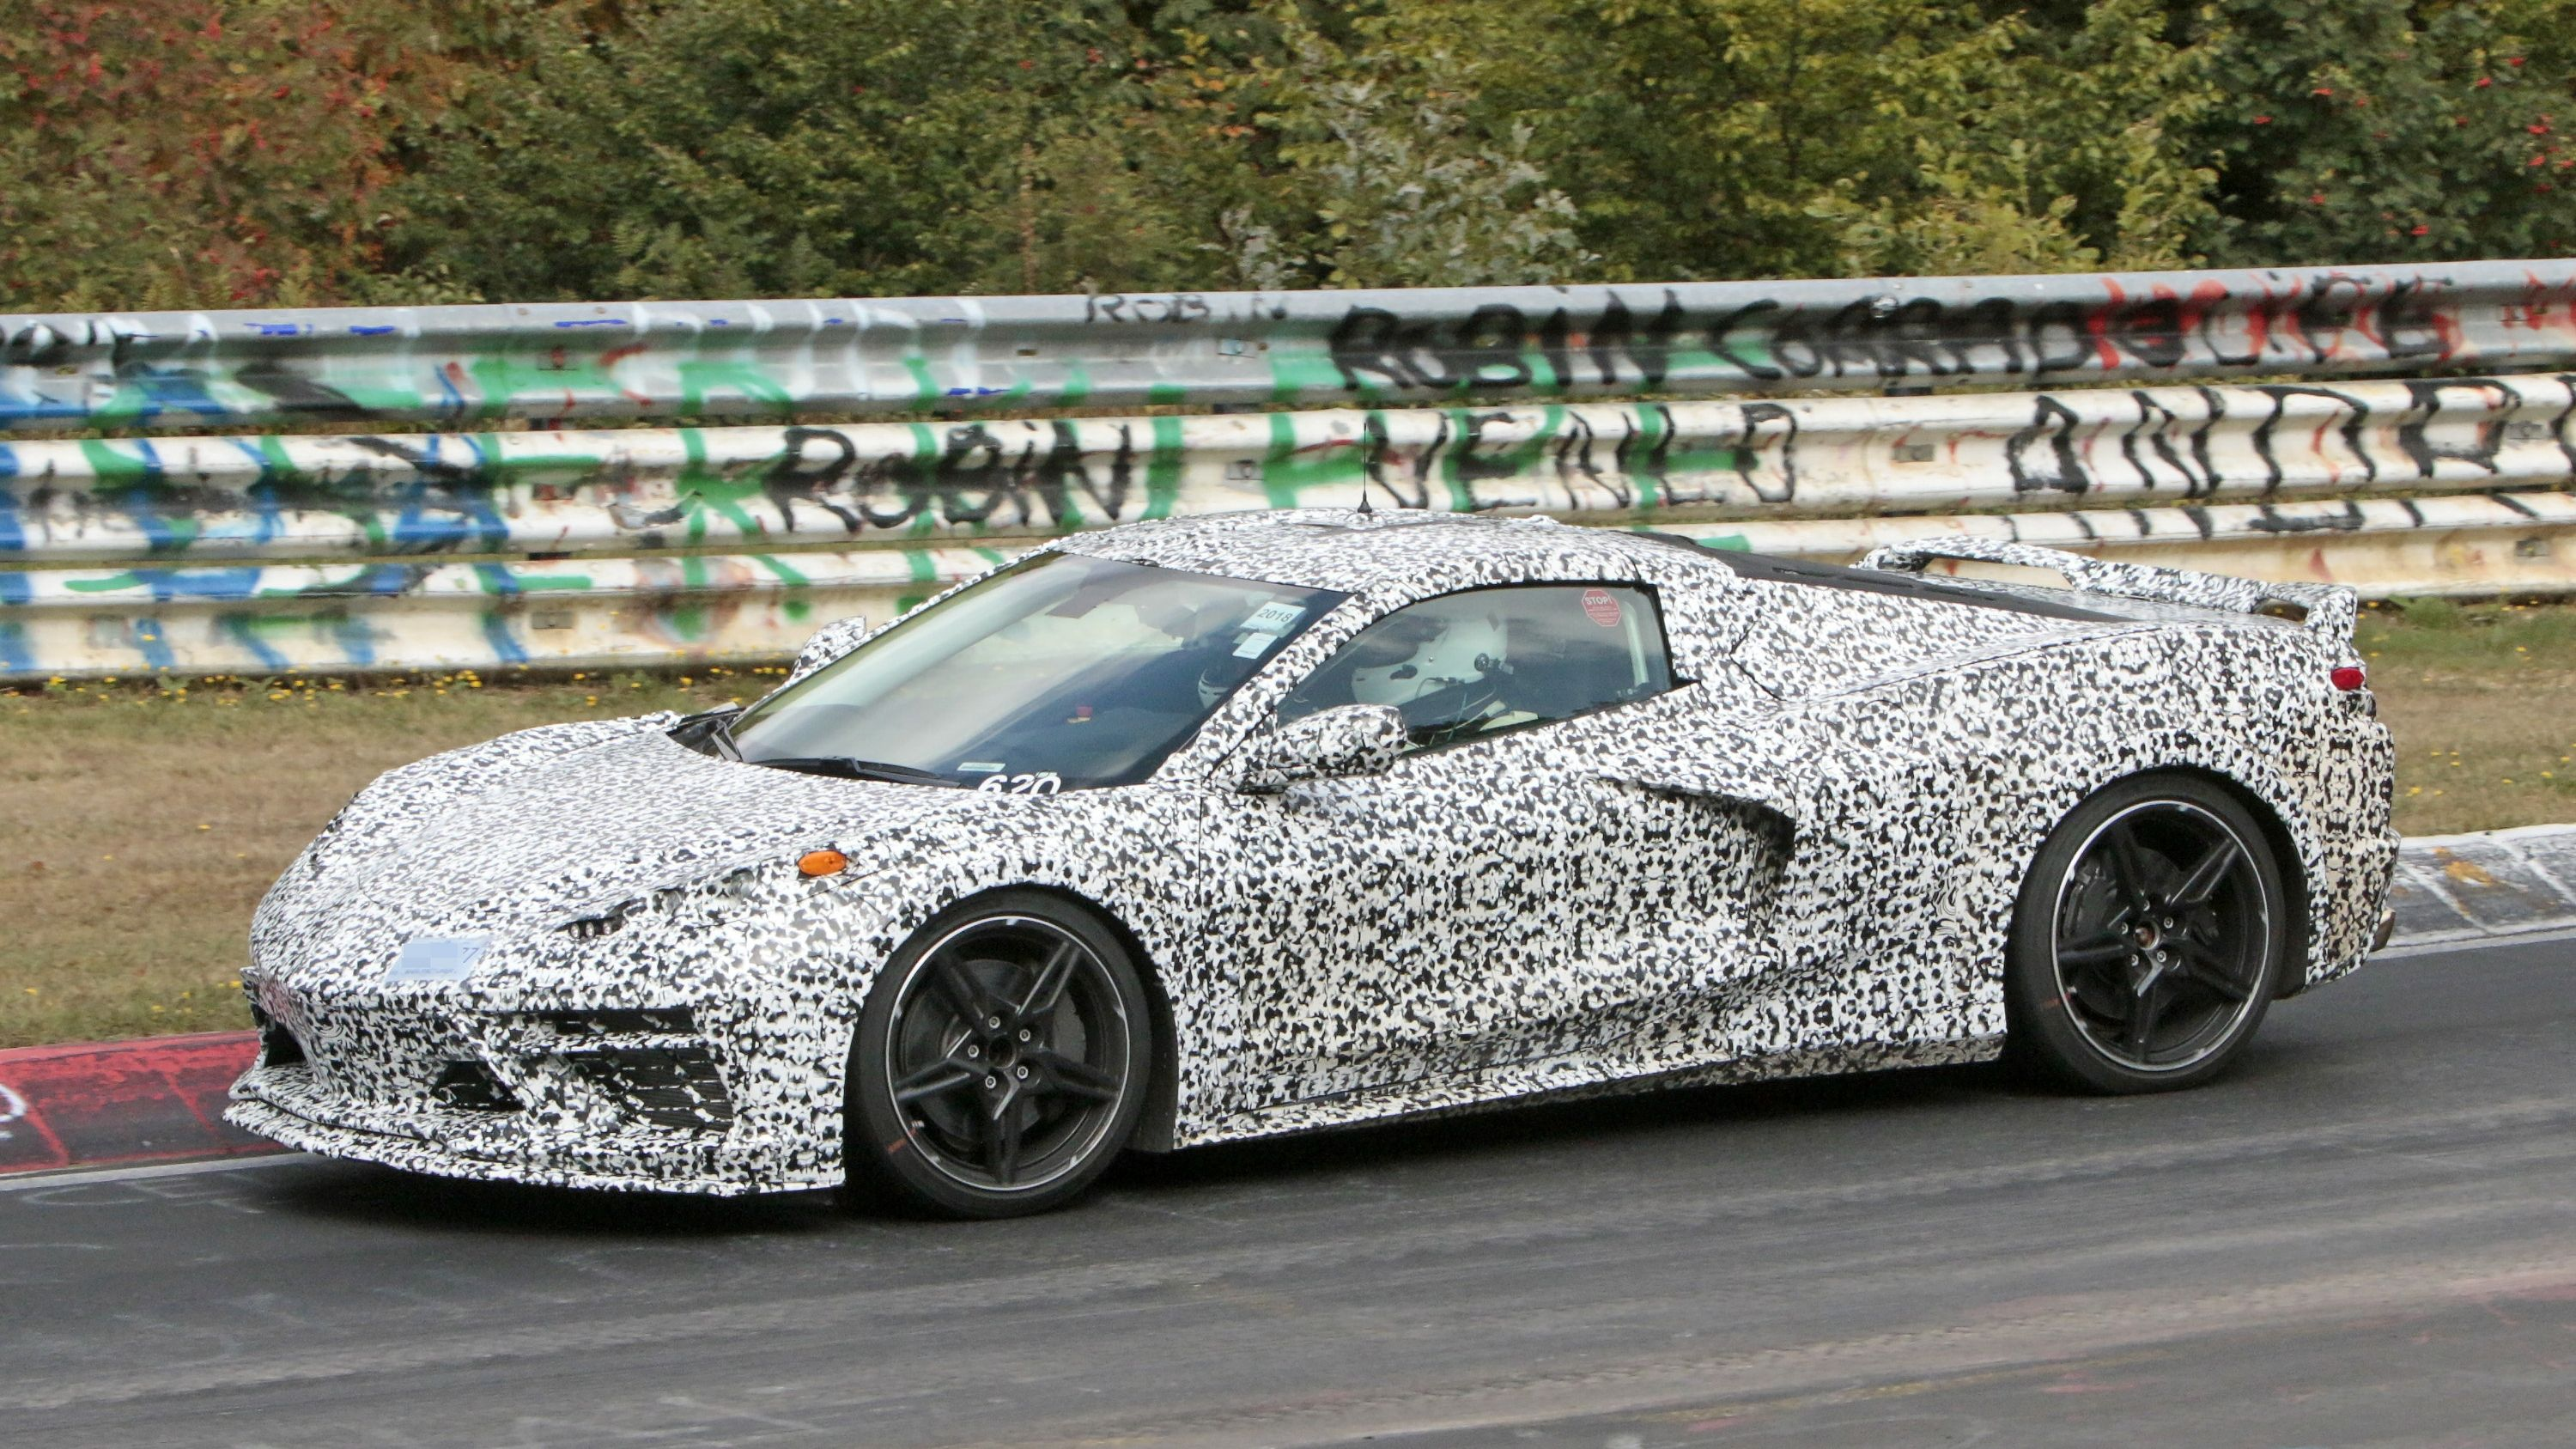 Mid Engined Chevrolet Corvette C8 Caught Testing At Nurburgring